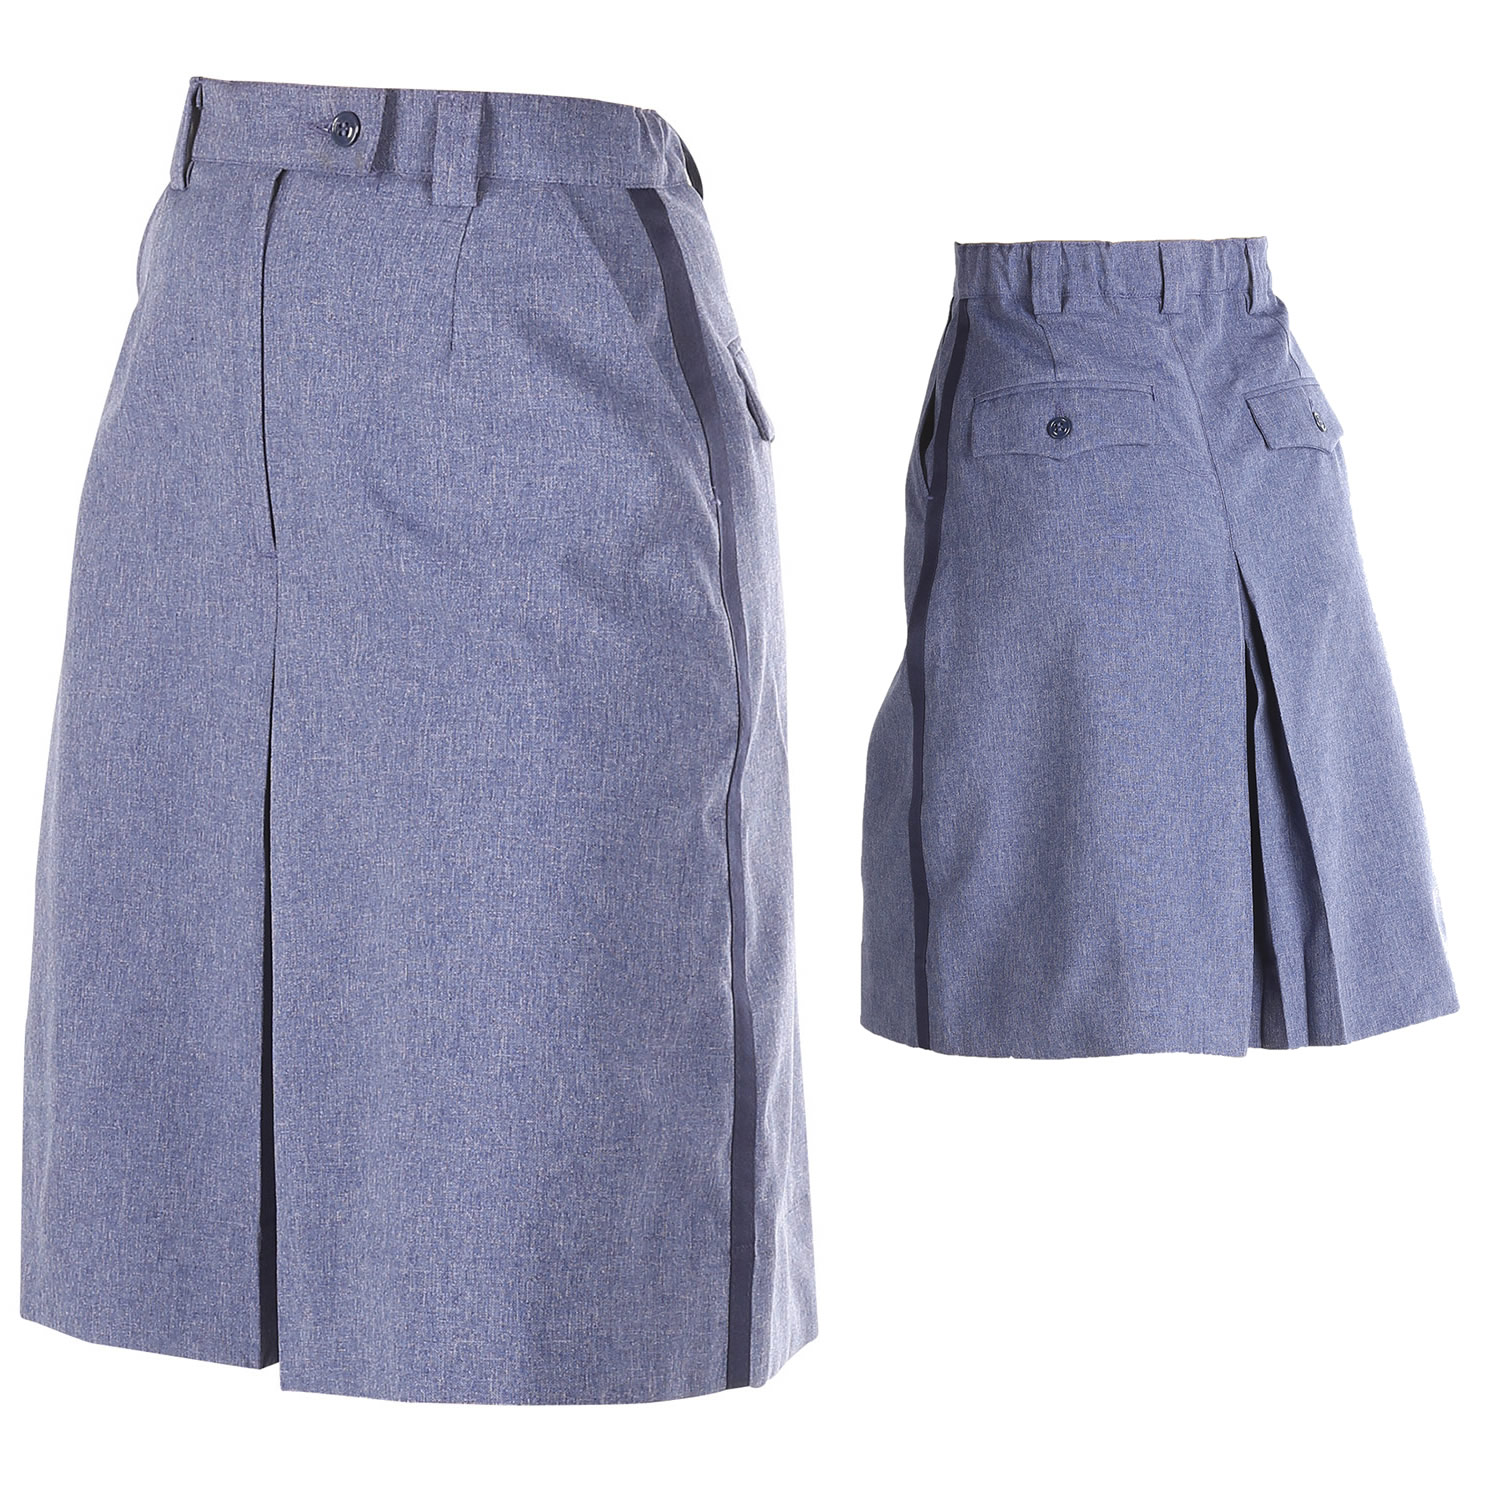 ladies postal uniform letter carrier culottes